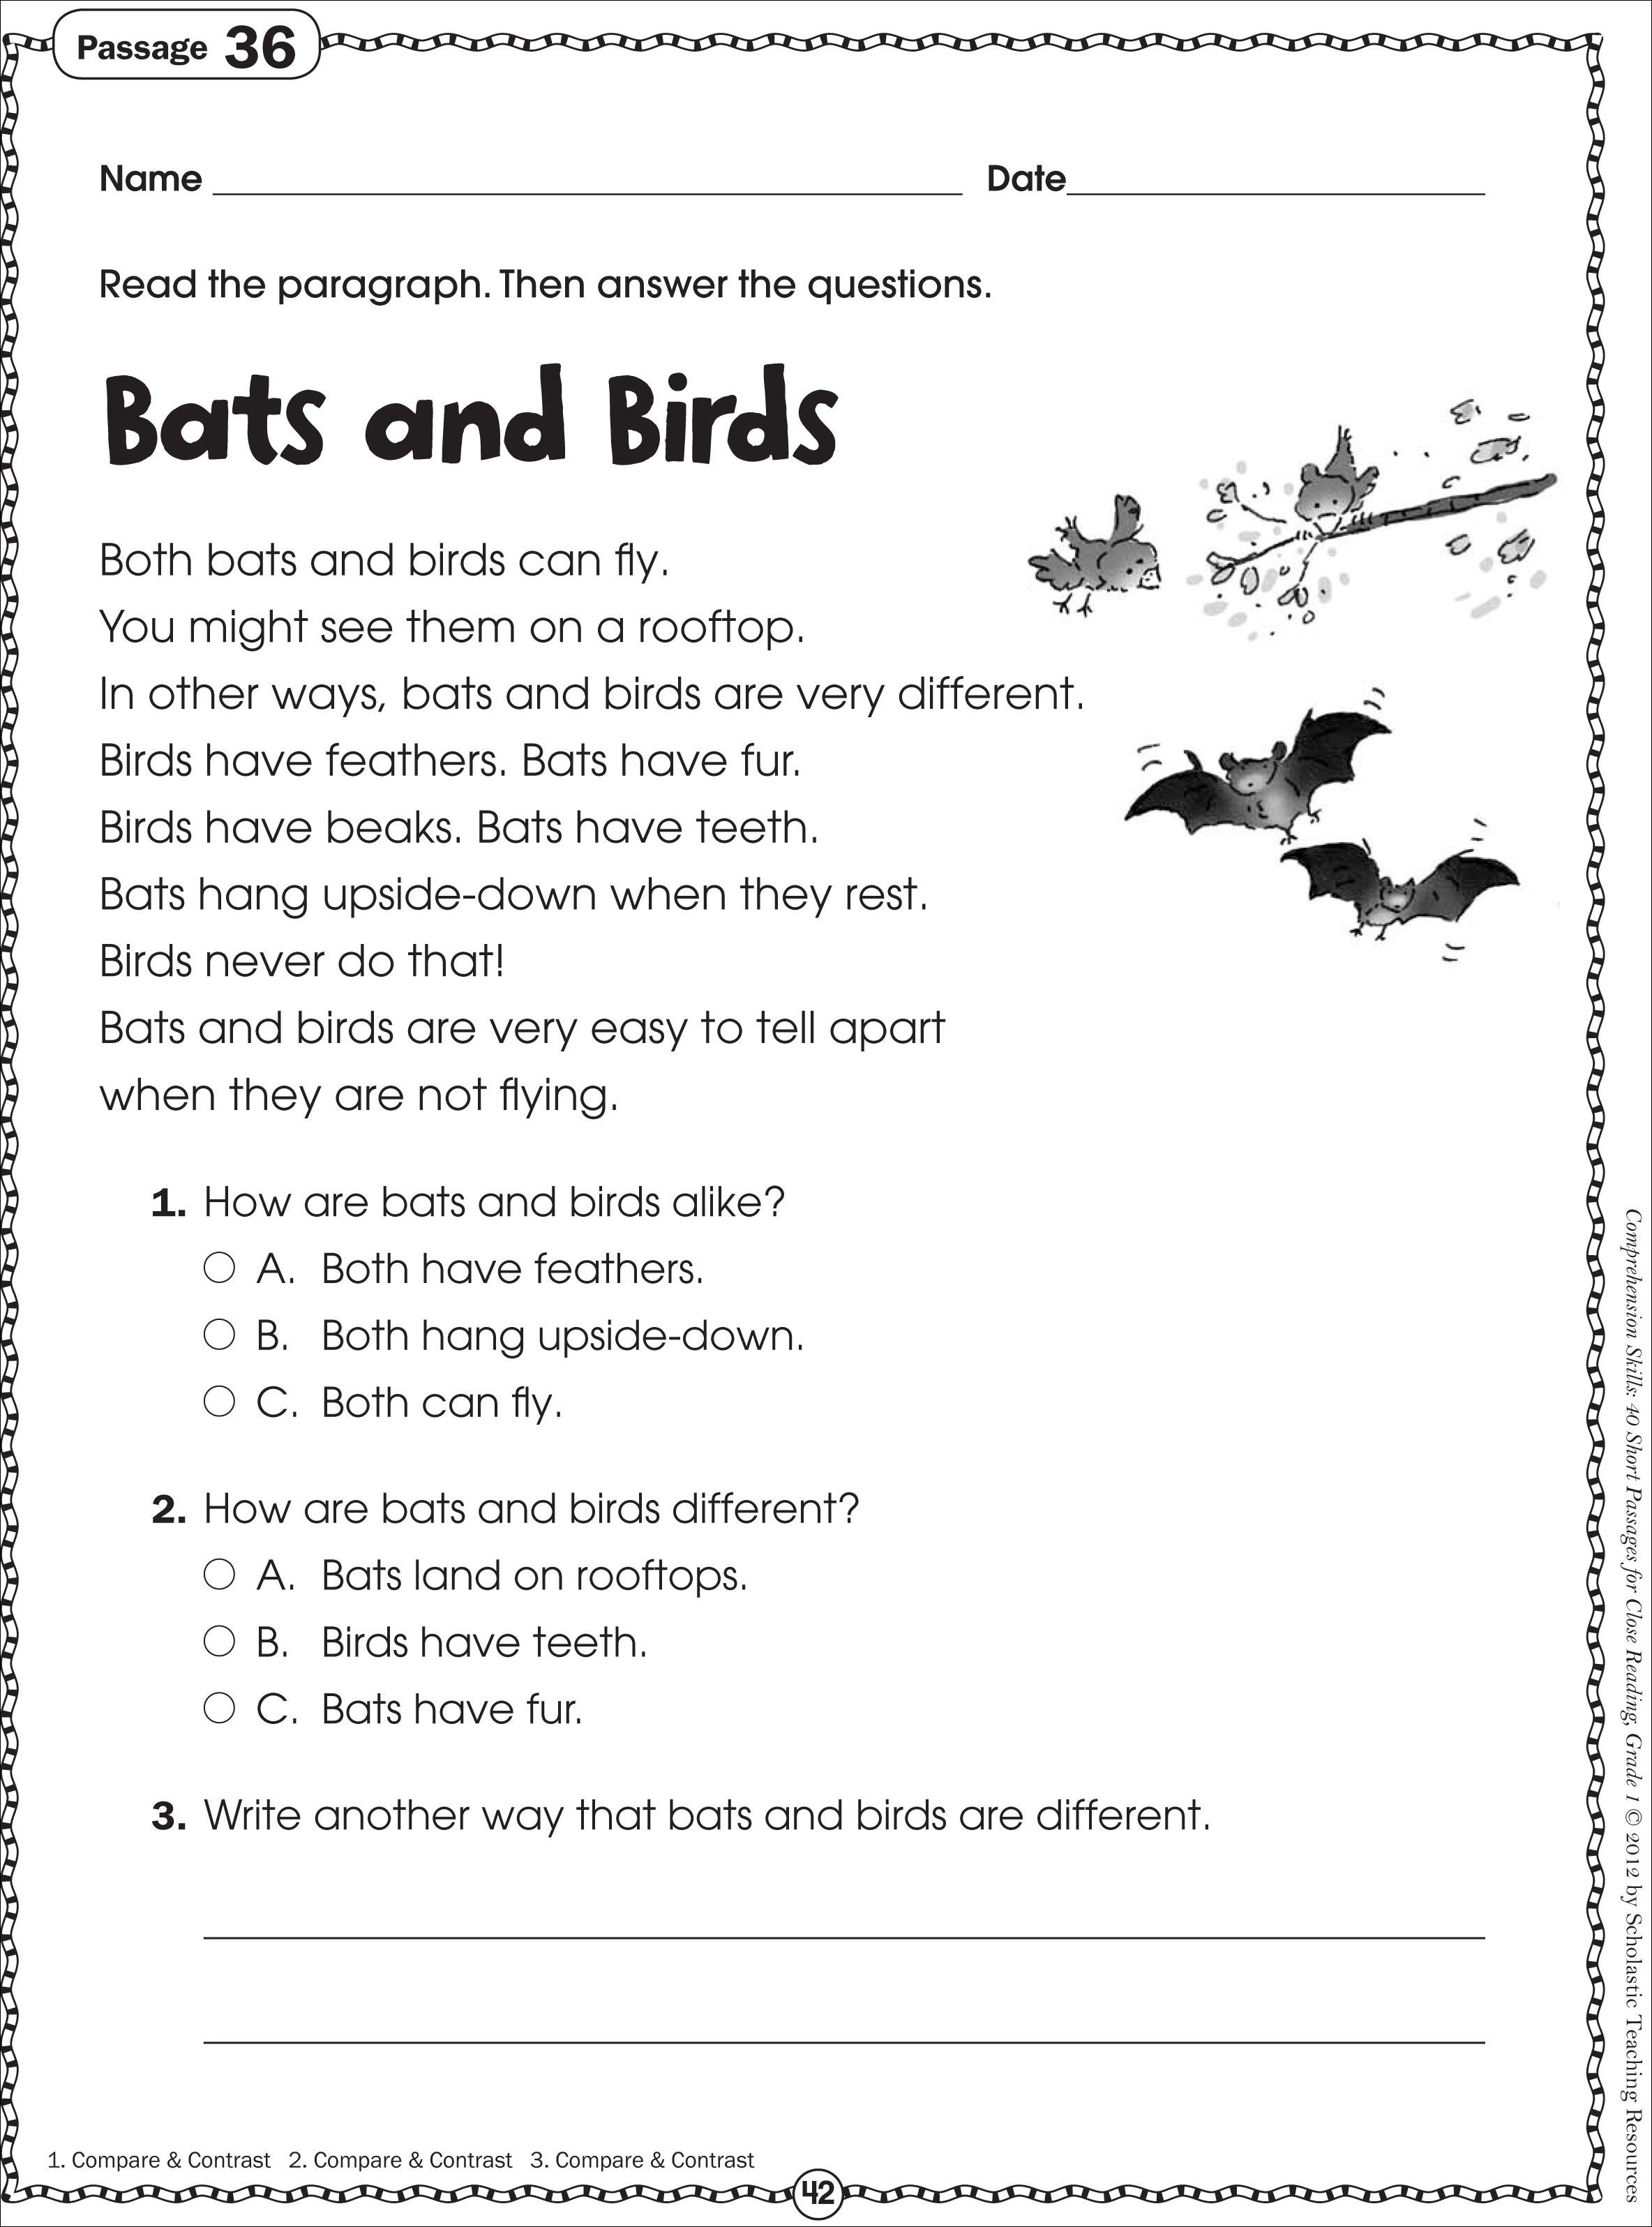 Free Printable Reading Comprehension Worksheets For Kindergarten - Free Printable Short Stories With Comprehension Questions